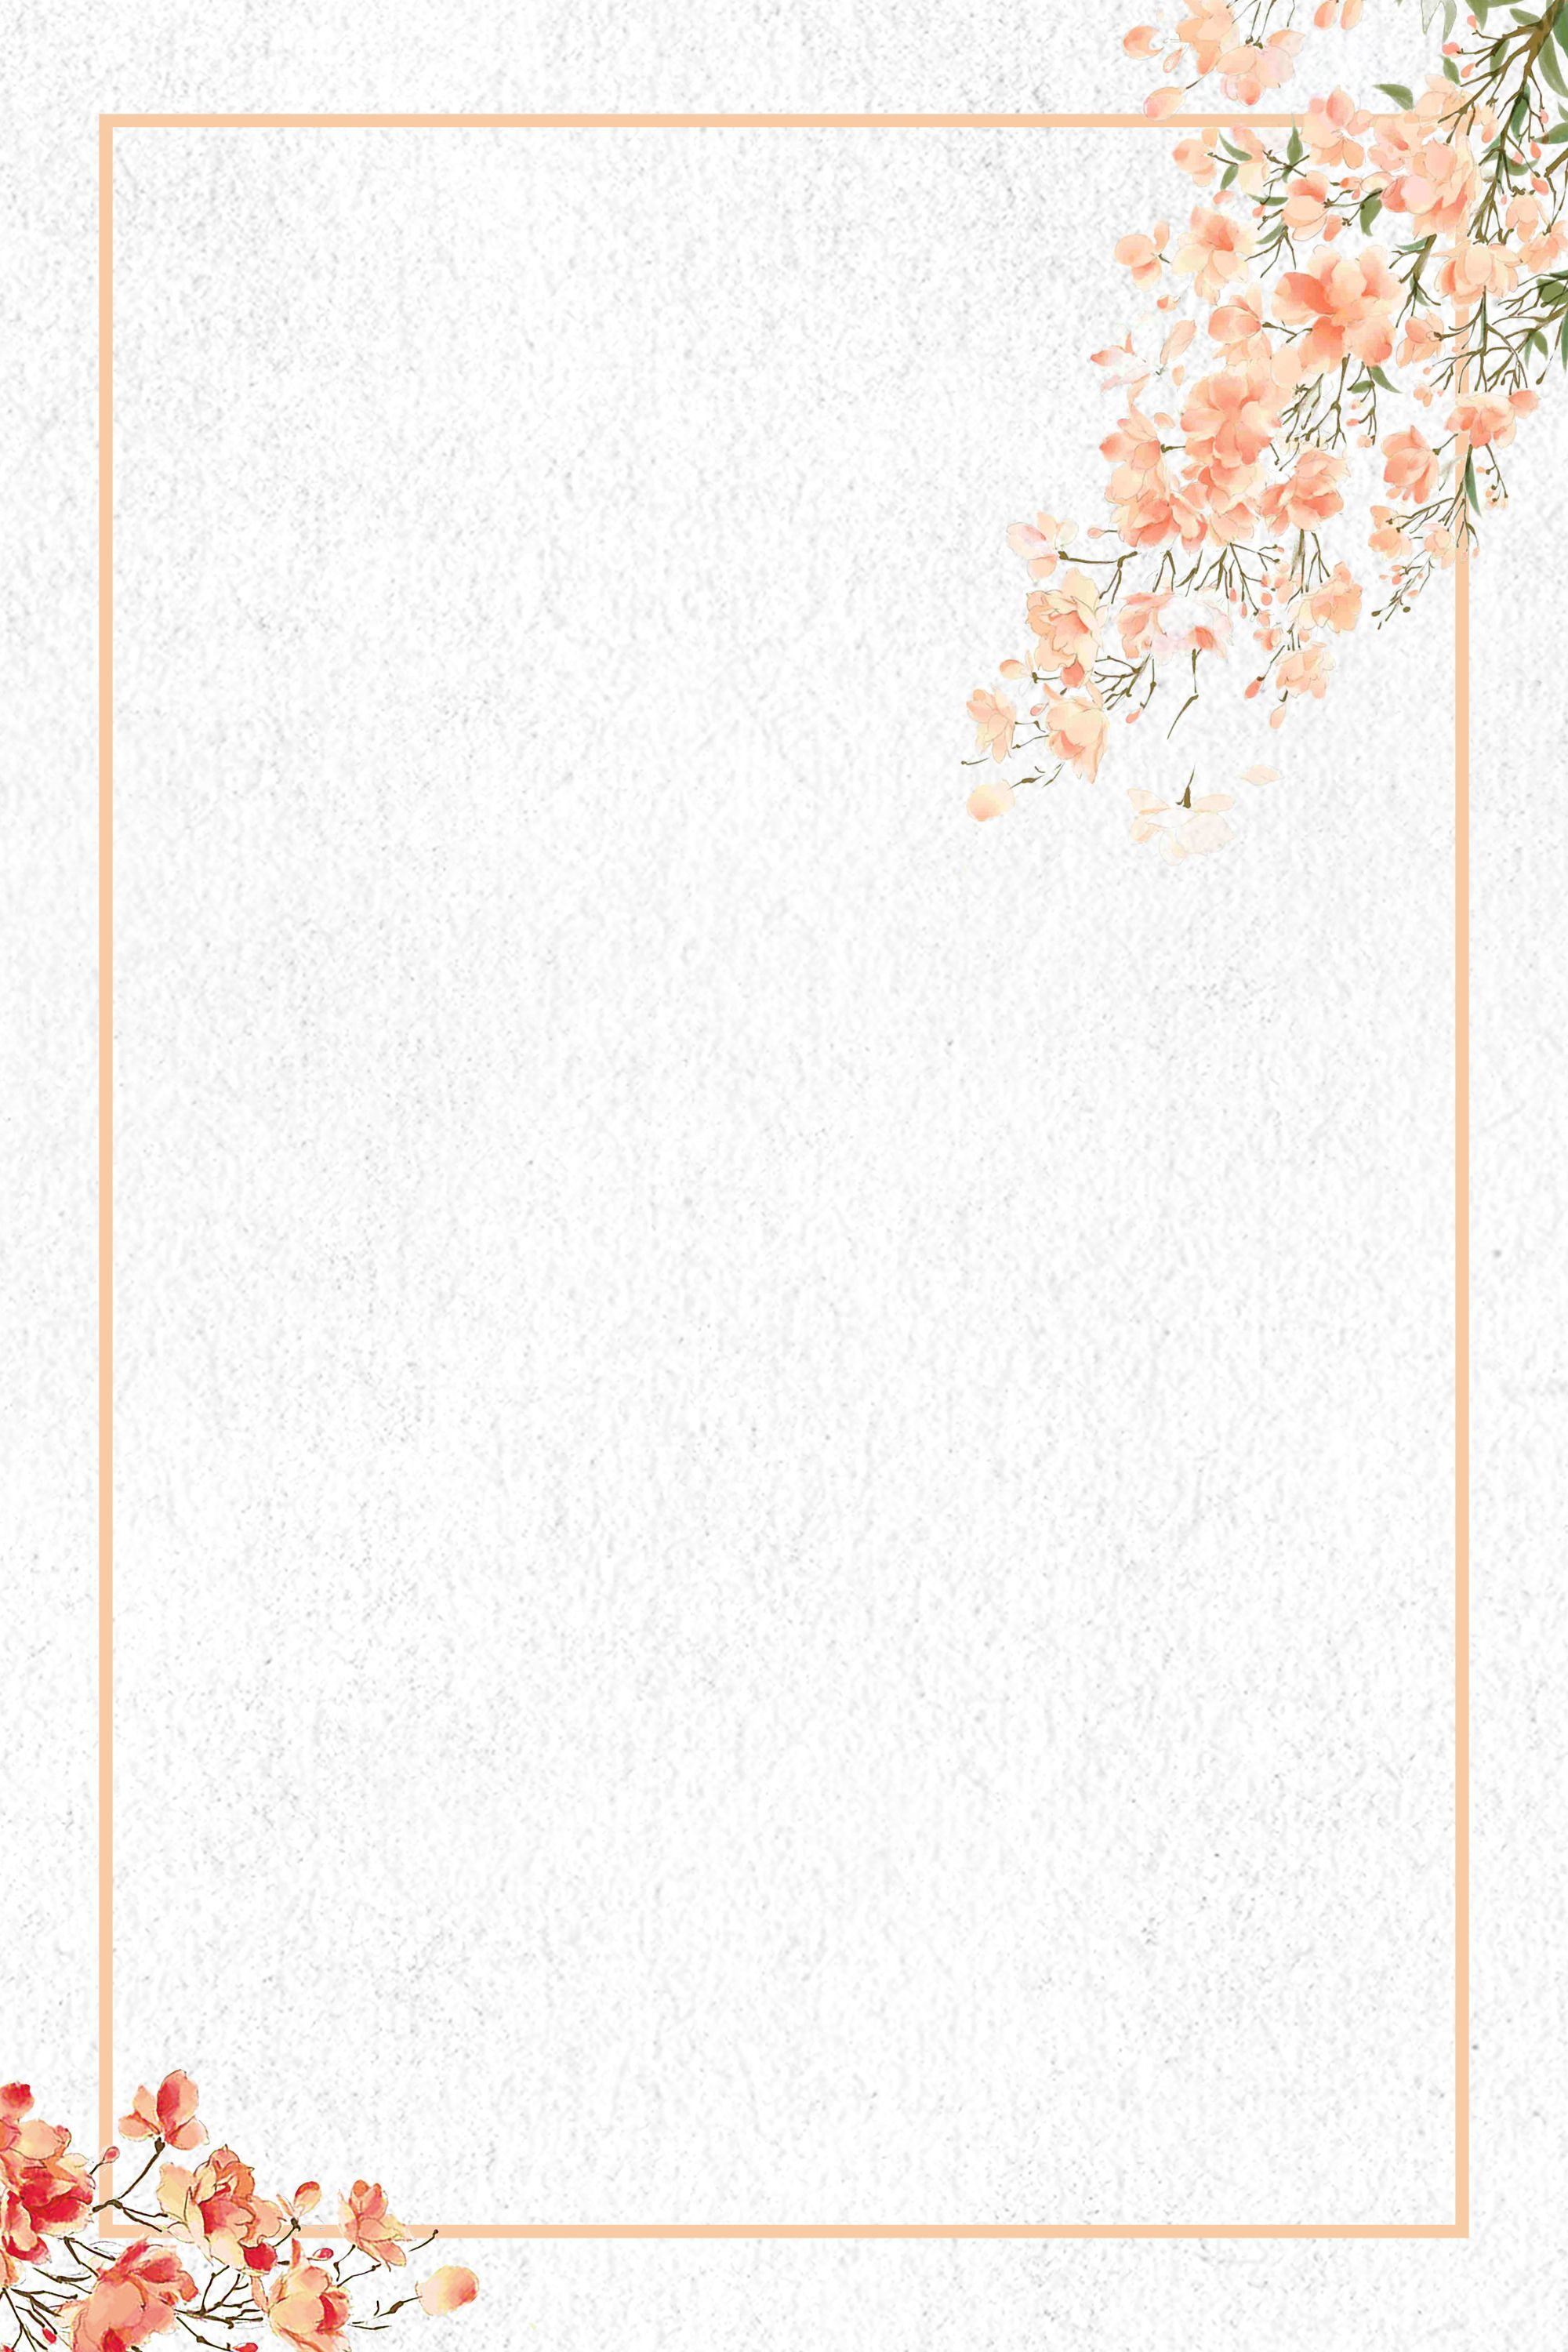 Simple Art Watercolor Flower Psd Layered Advertising Background In 2020 Watercolor Flower Background Flower Background Wallpaper Watercolor Flowers